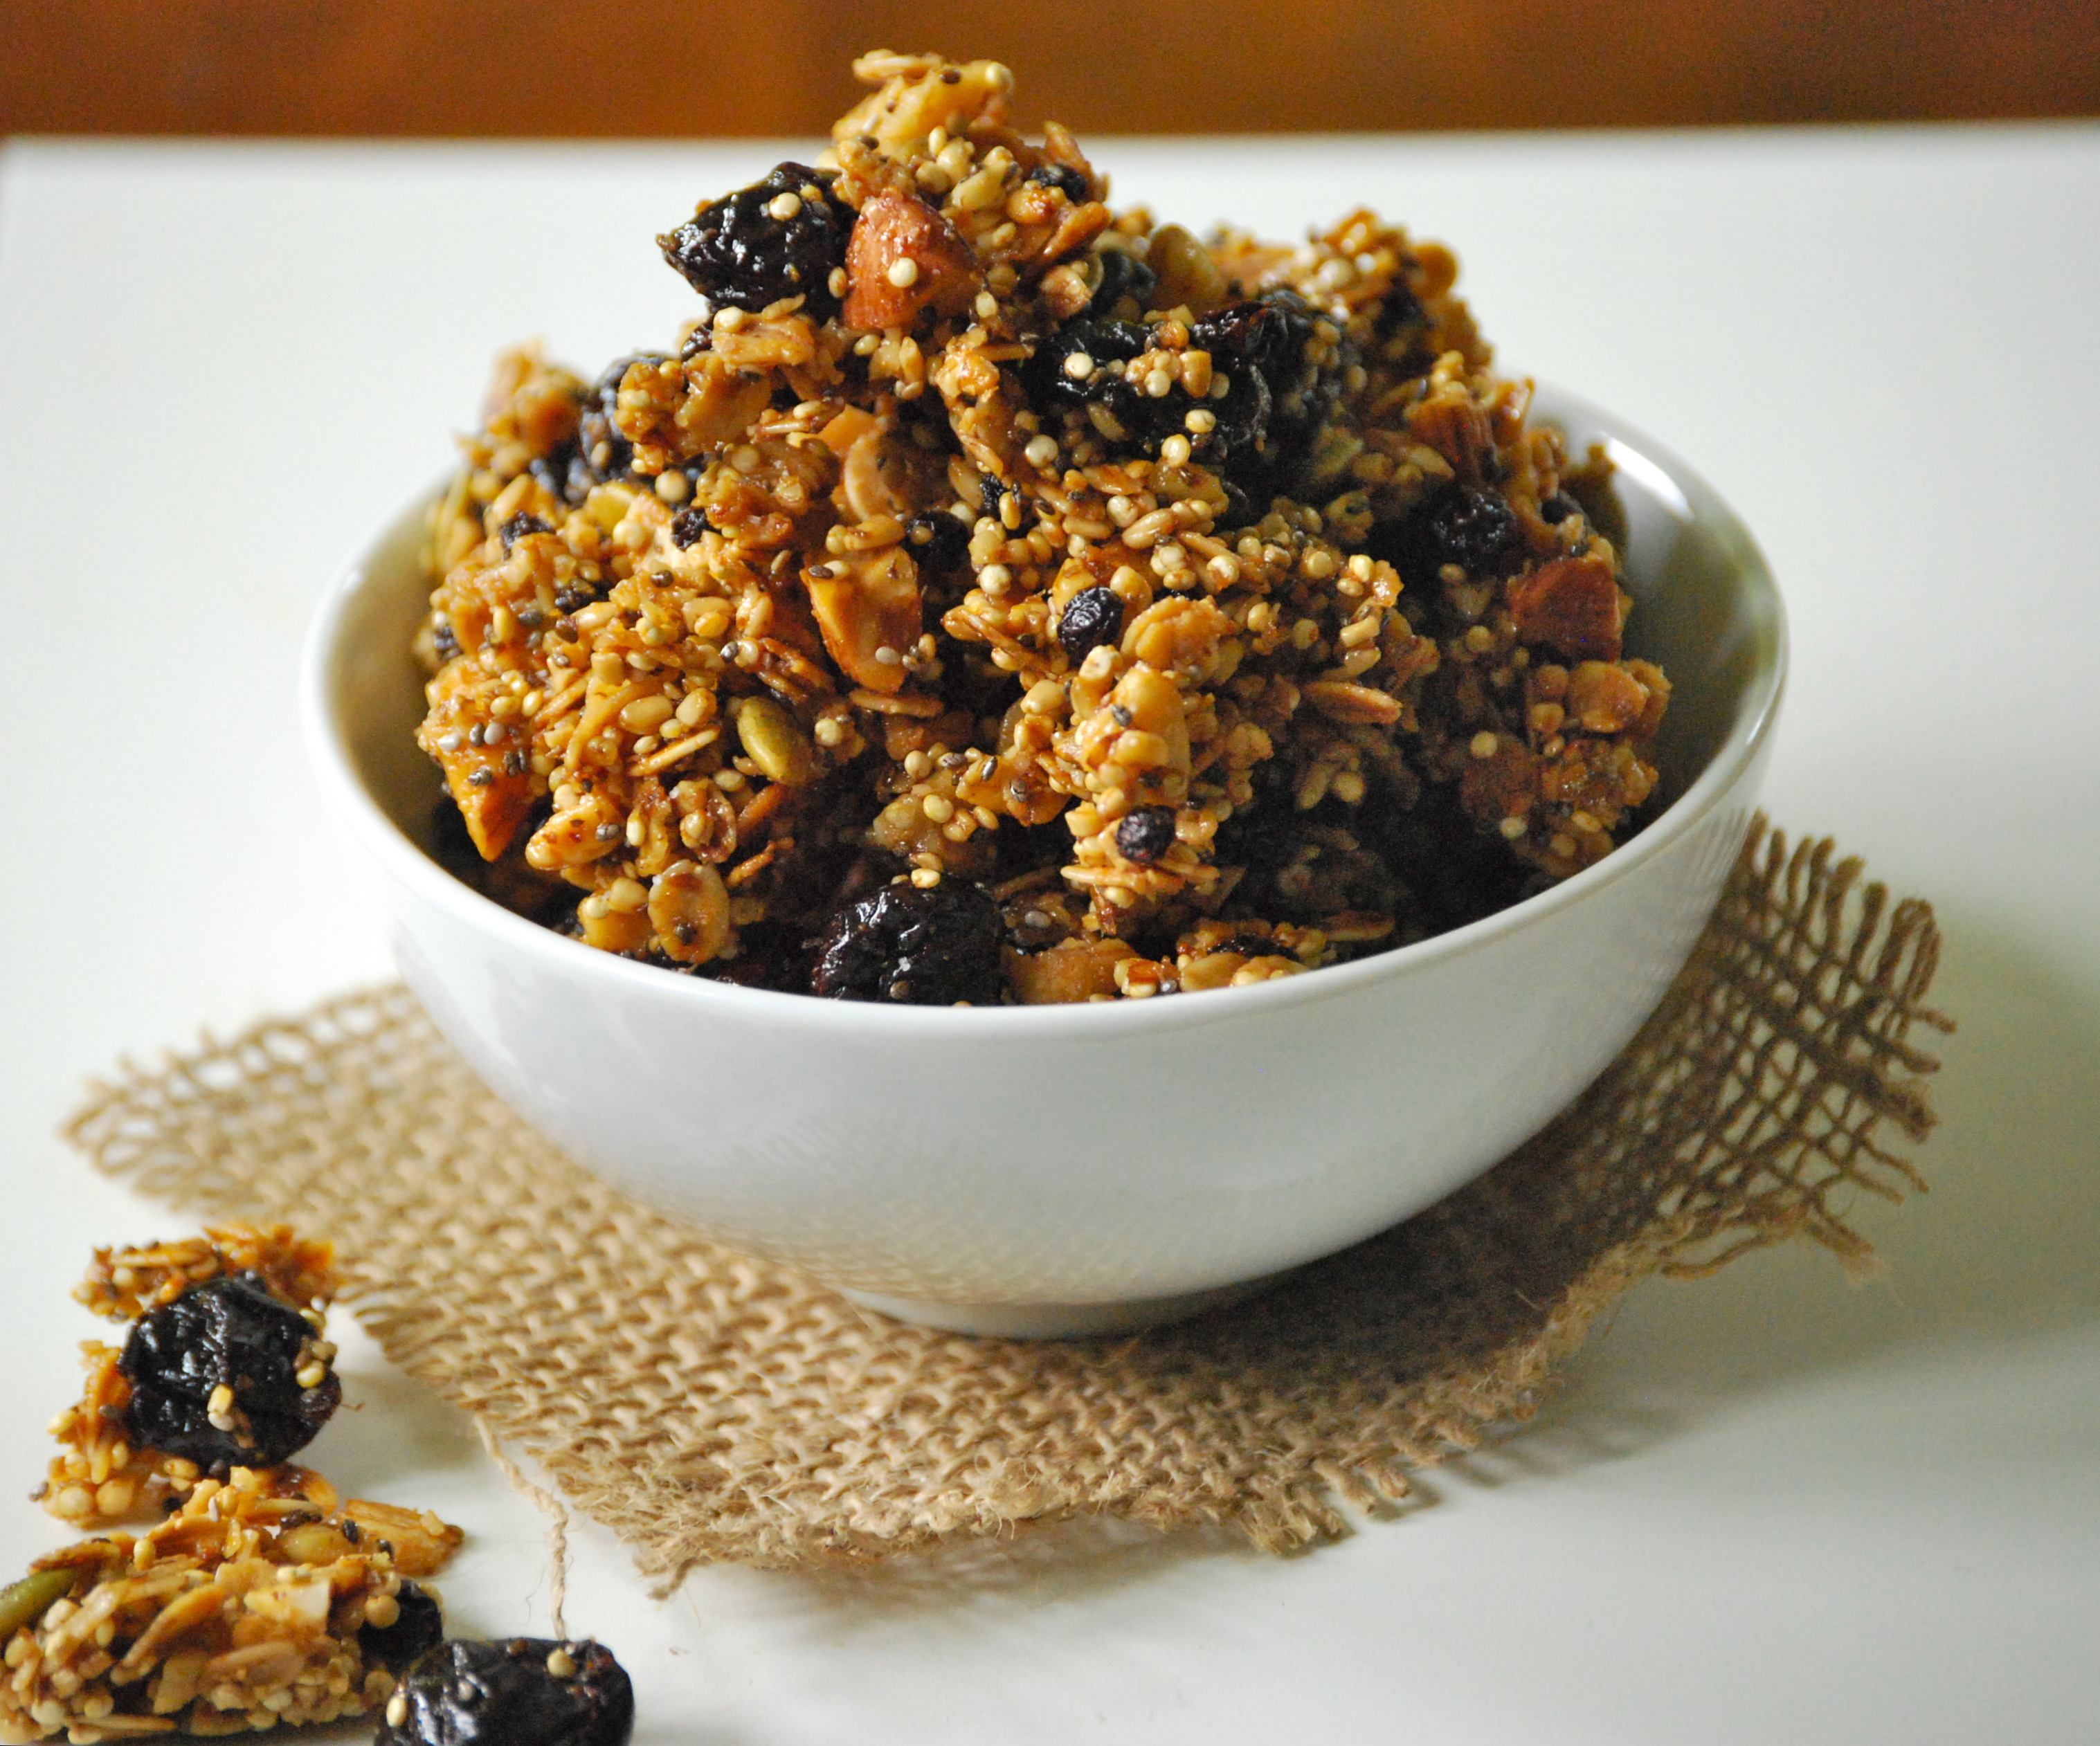 The Recipes: Homemade Granola Two Ways